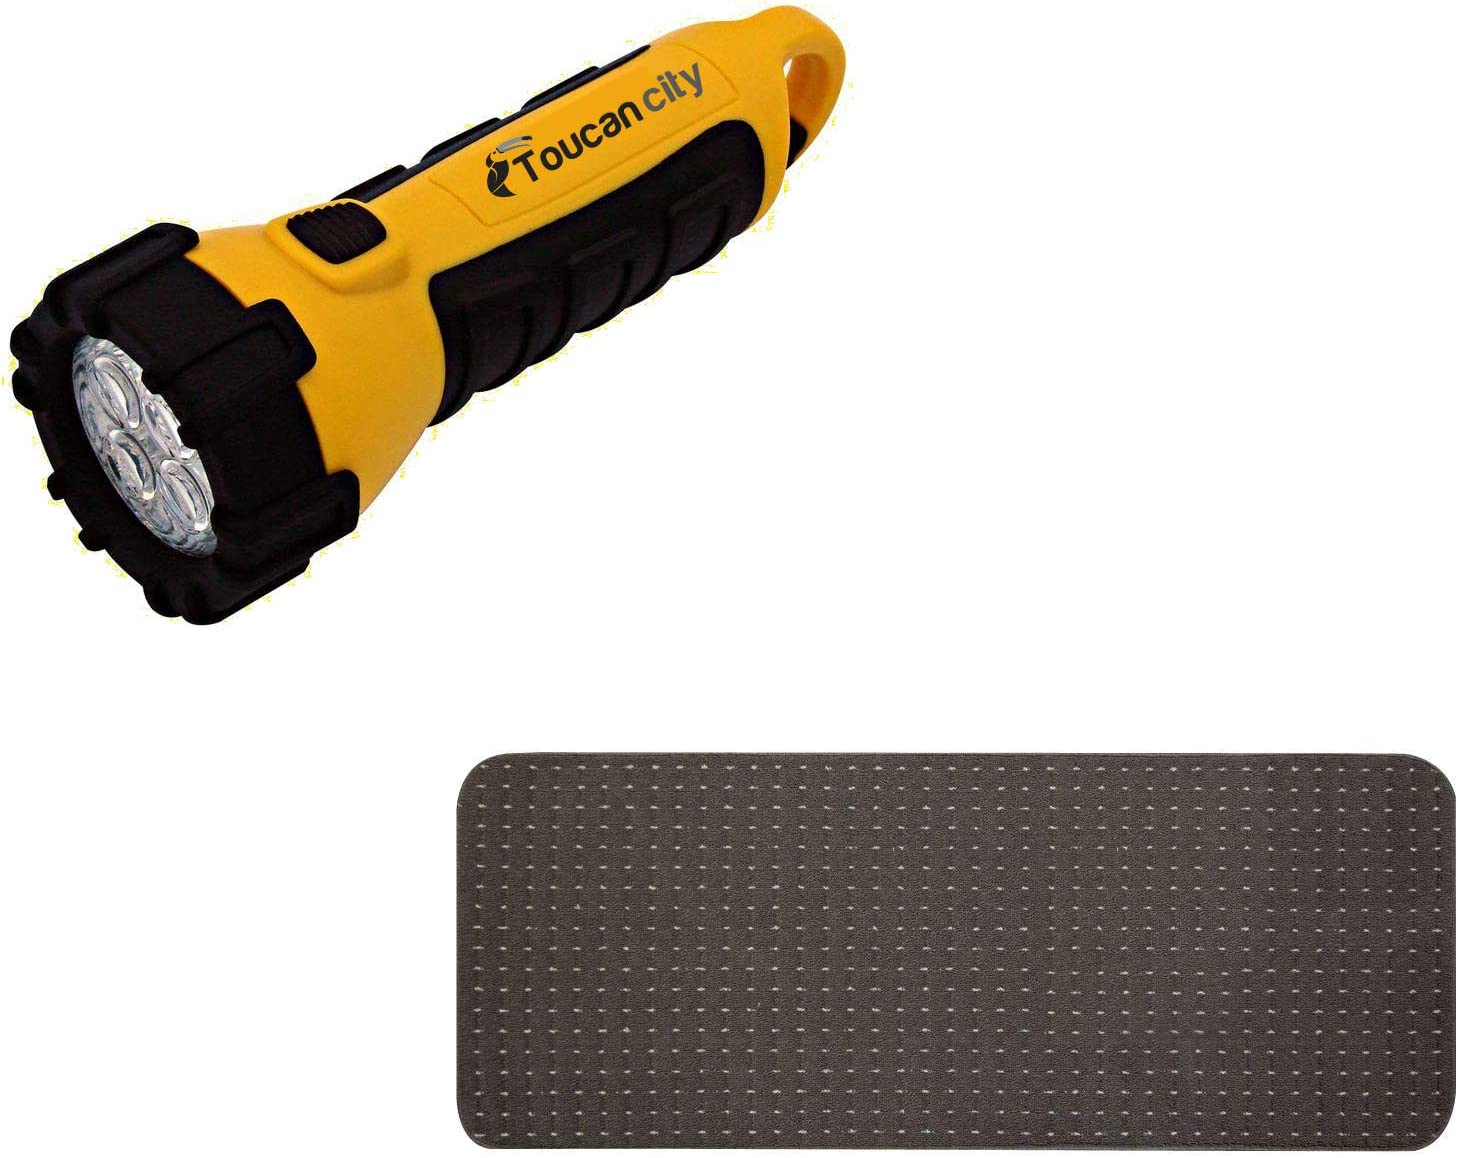 Toucan City LED Flashlight and Multy Home Pindot Chocolate 9 in. x 24 in. Stair Tread Cover (Set of 12) MT1003501CM